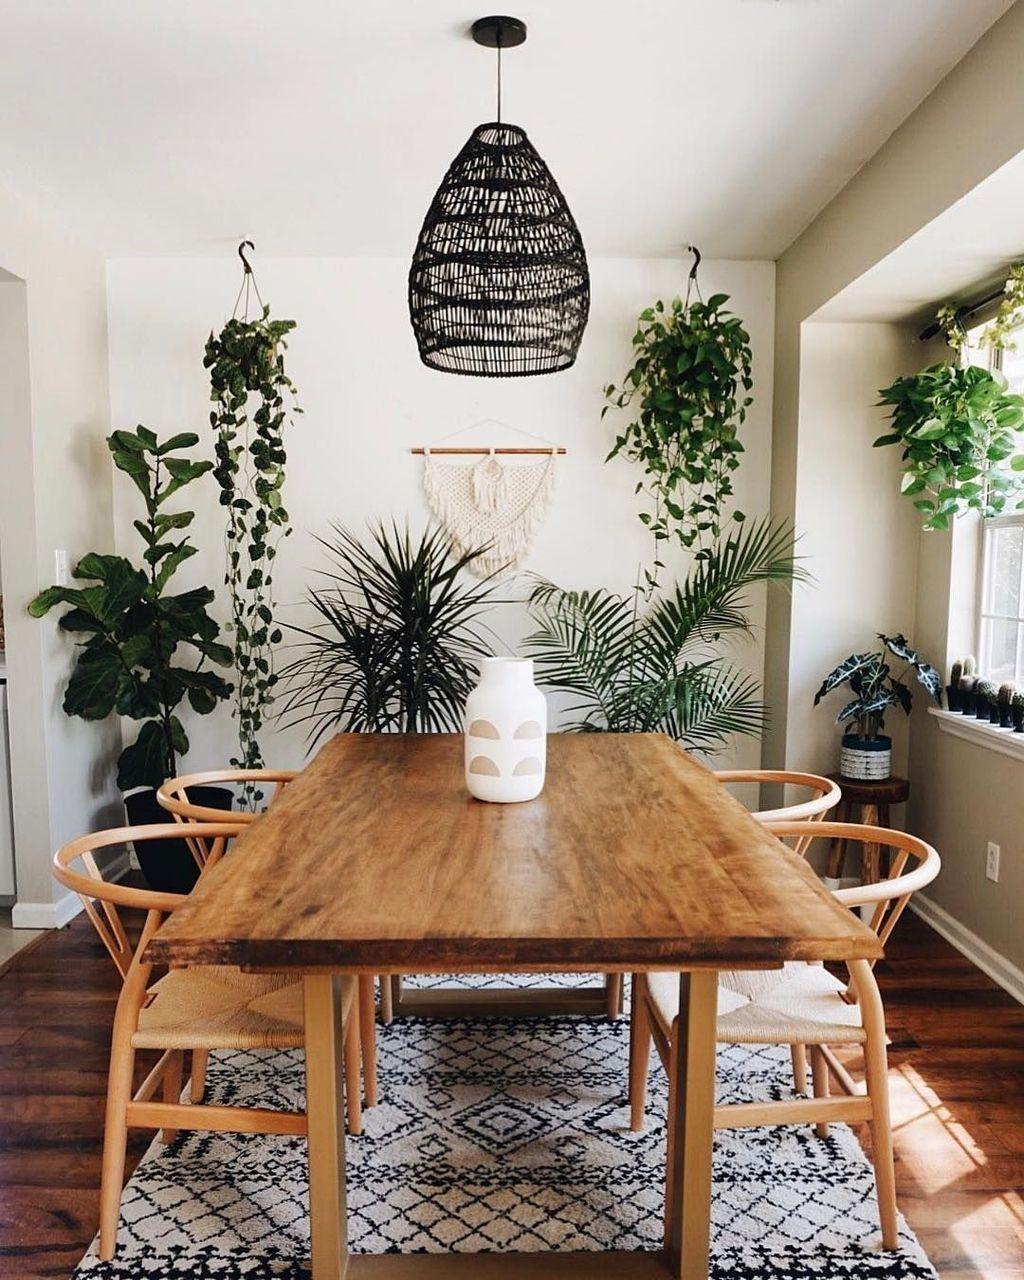 20 unordinary dining room design ideas with bohemian style in 2020 boho dining room bohemian on boho chic dining room kitchen dining tables id=19644